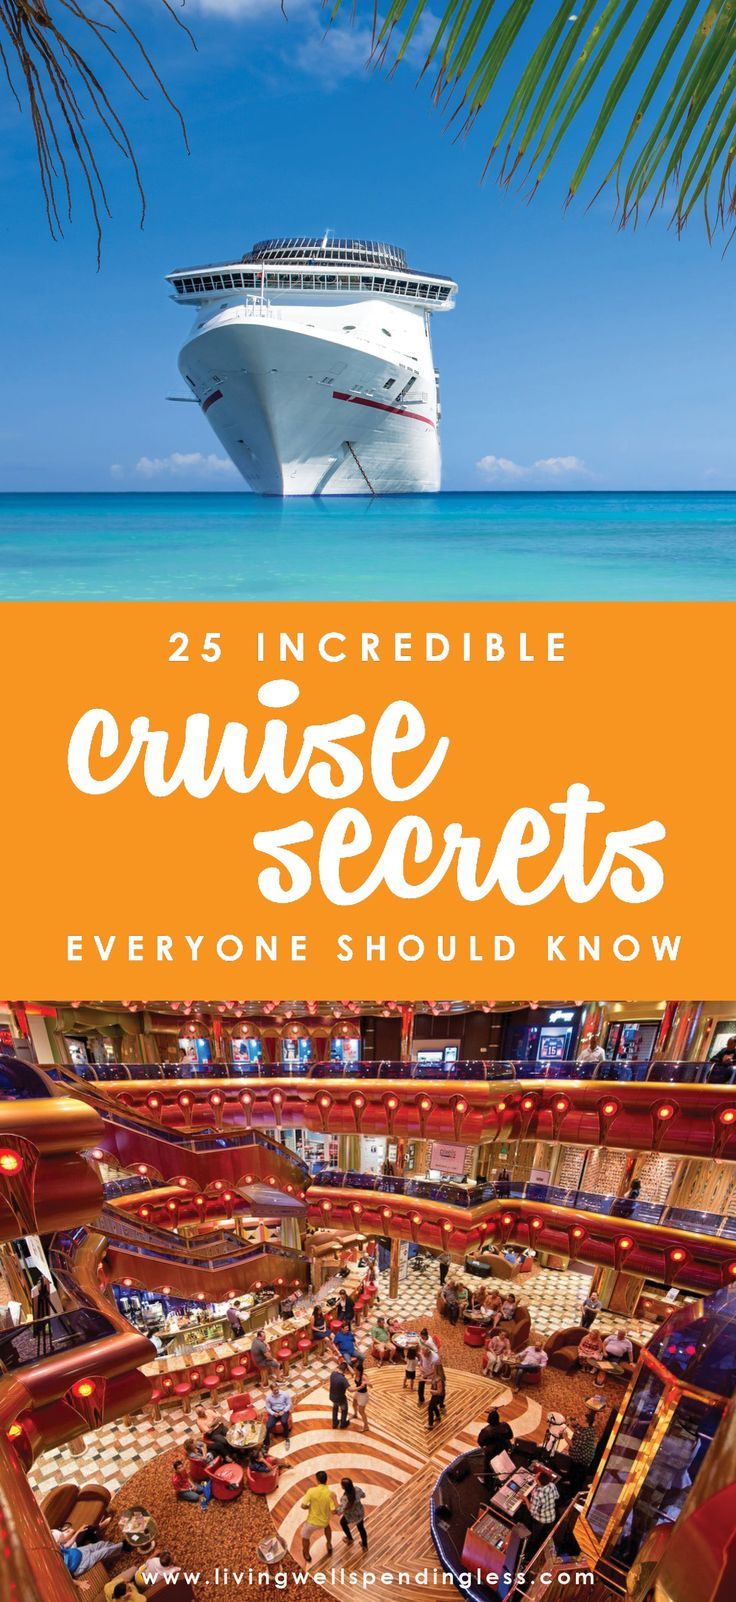 These 25 cruise secrets can help you find the best deals, discover little-known …